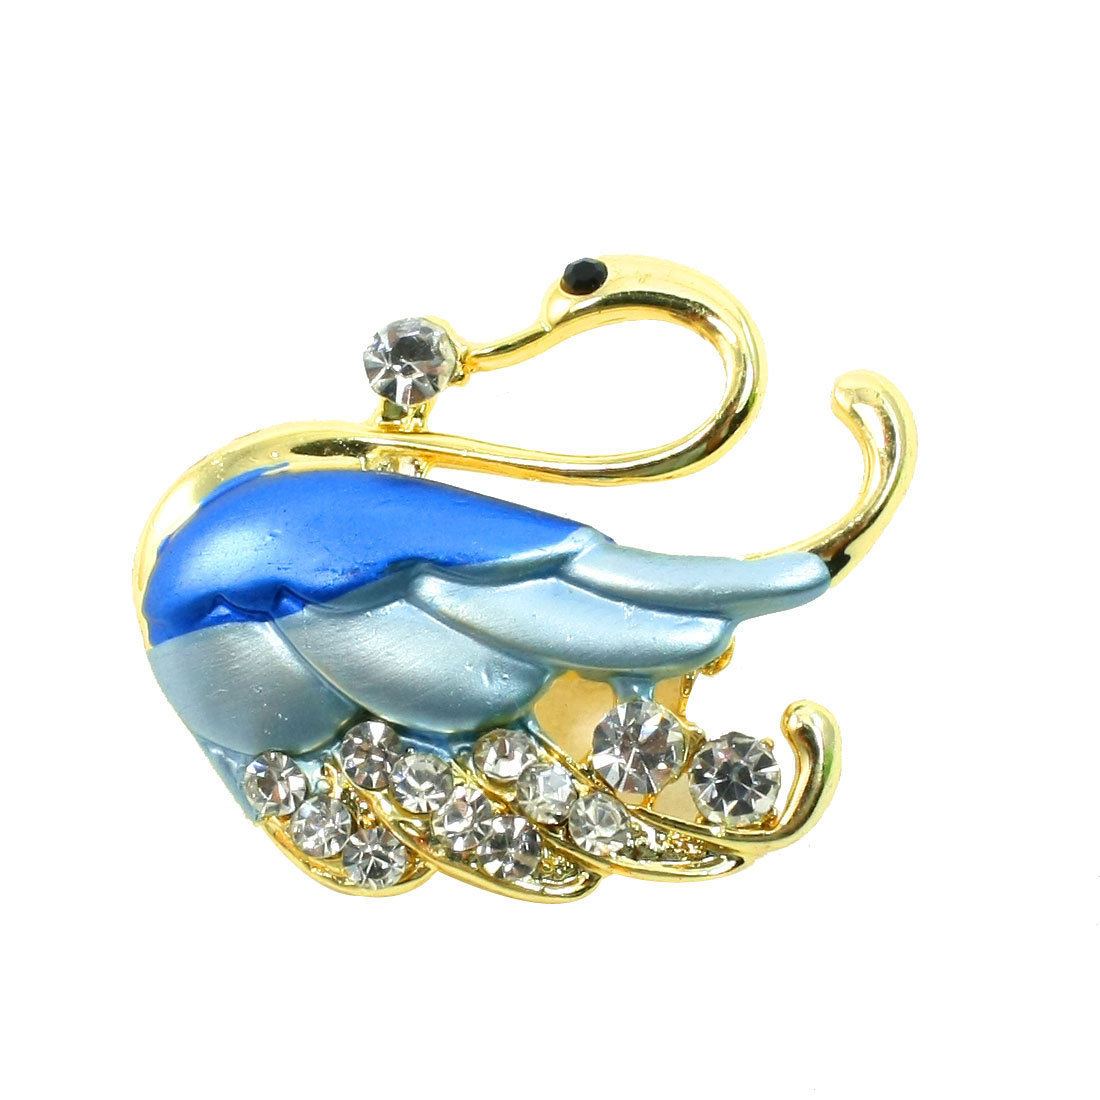 Lady Glistening Rhinestone Wing Swan Detailing Safety Pin Brooch Breastpine Blue